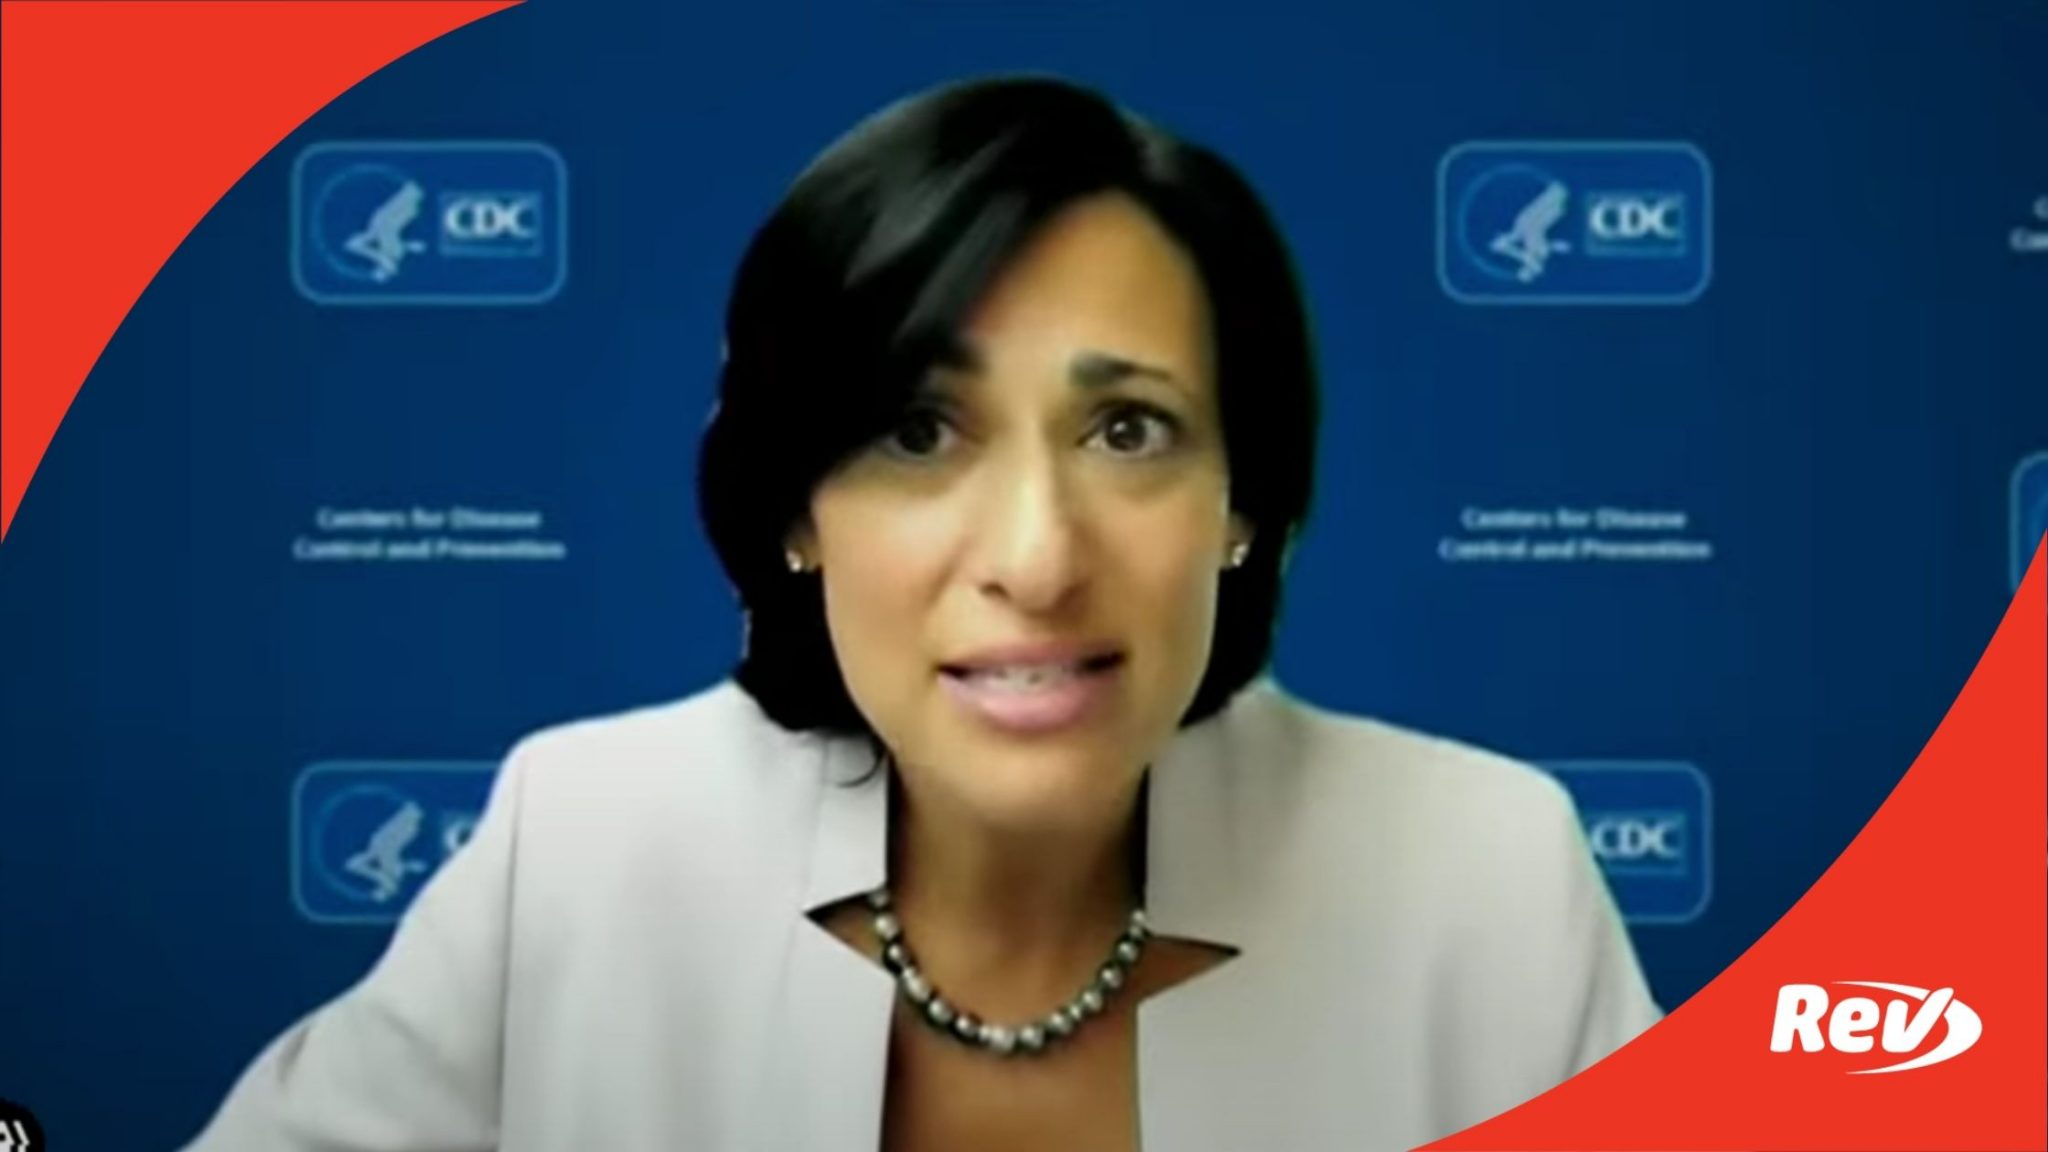 White House COVID-19 Task Force, Dr. Fauci Press Conference Transcript July 22